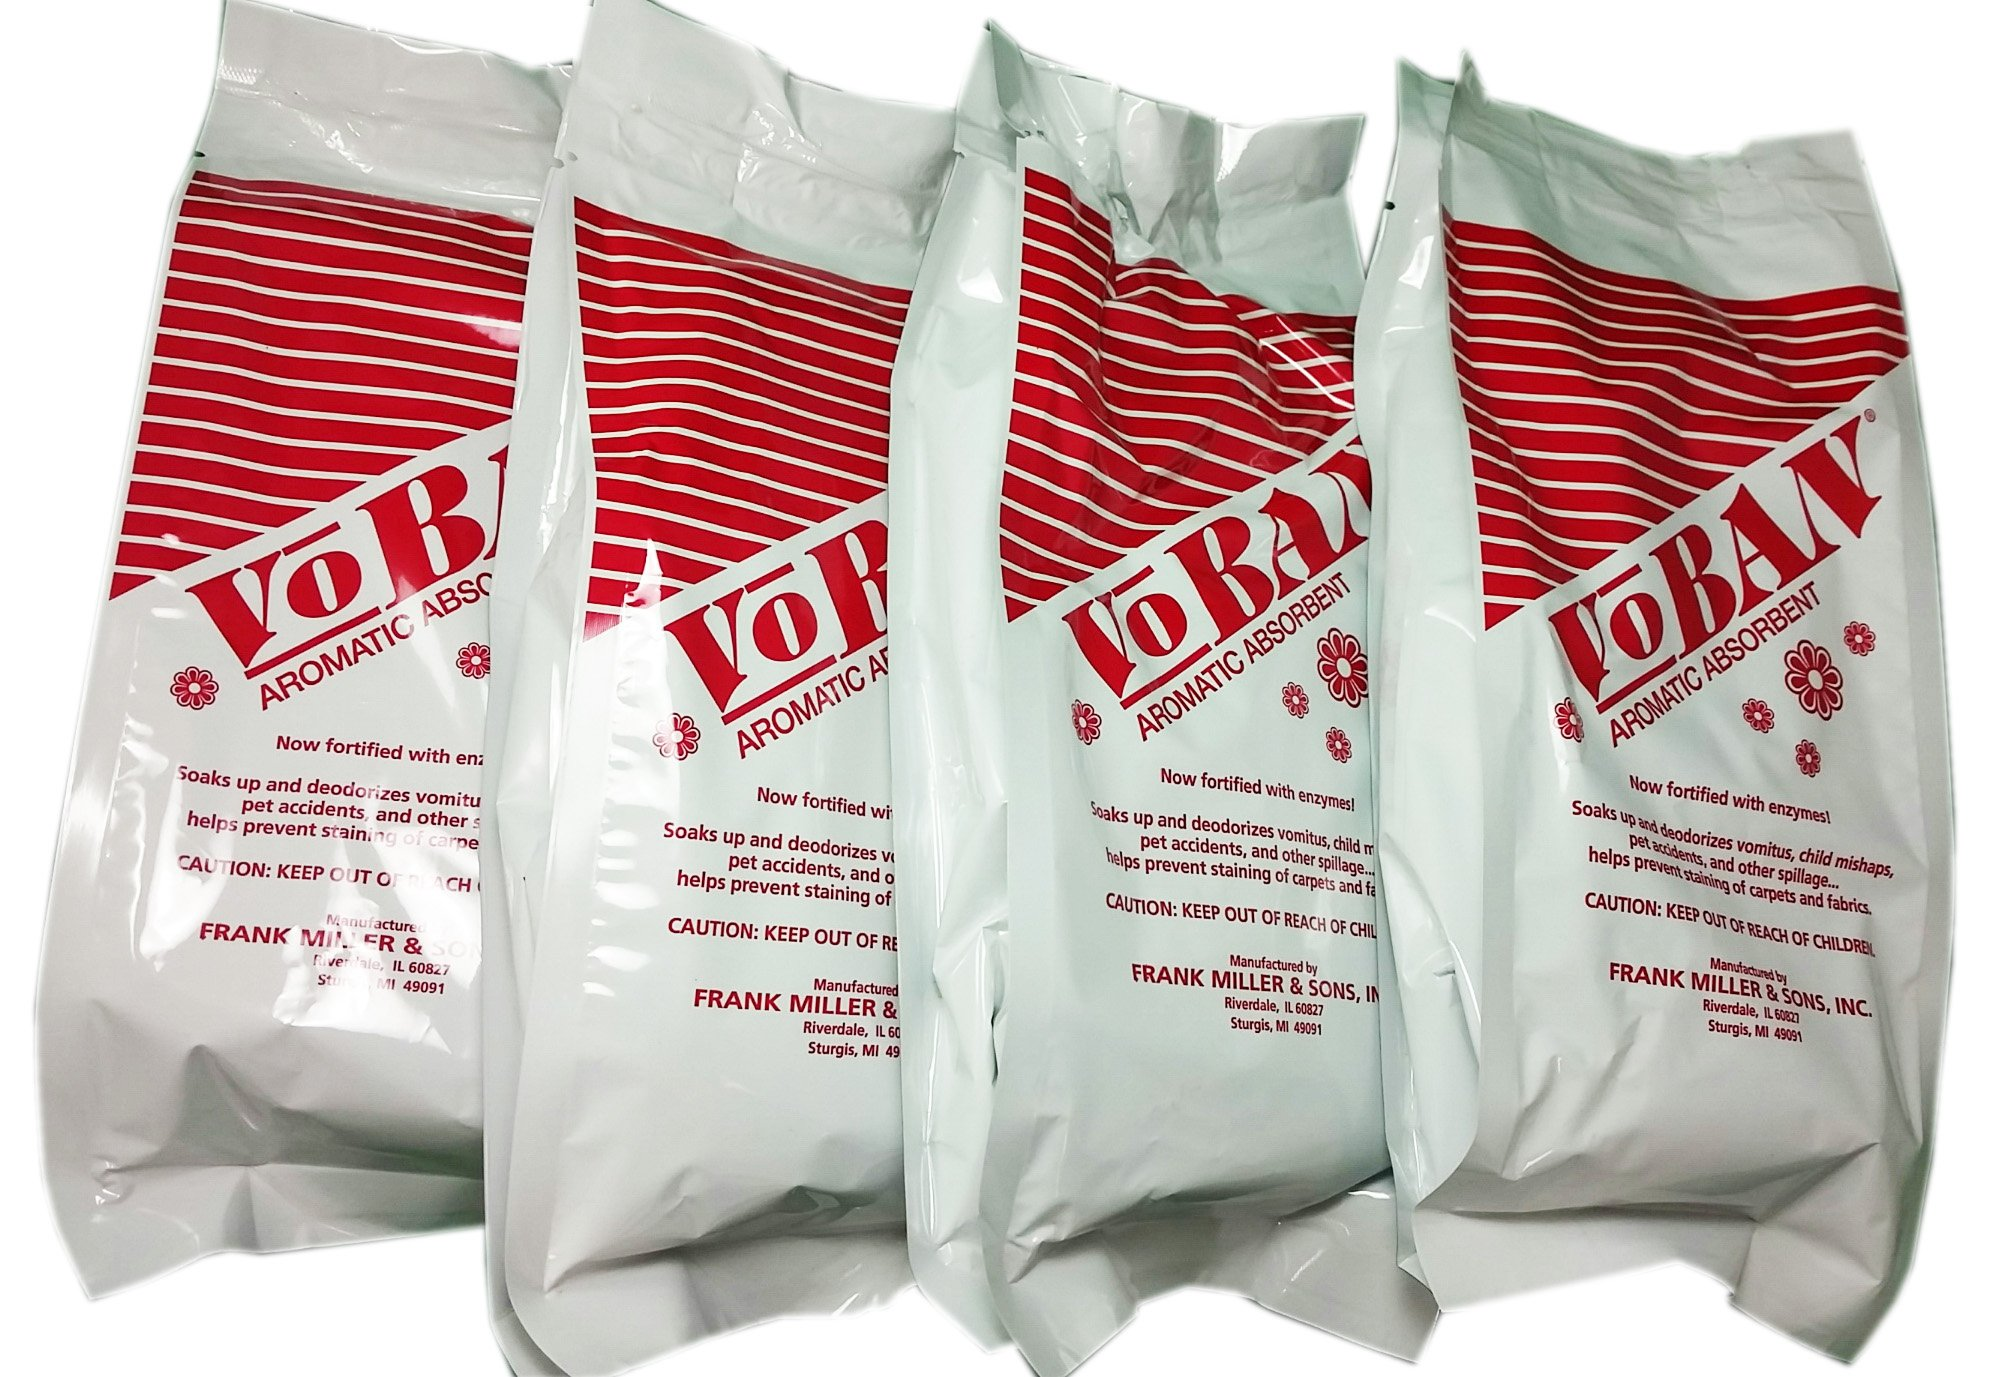 4 Qty - 1 lb Bags VOBAN Aromatic Absorbent with Enzymes - Deodorizes vomitus, child mishaps, pet accidents, spills, and helps prevent staining of carpets & fabrics